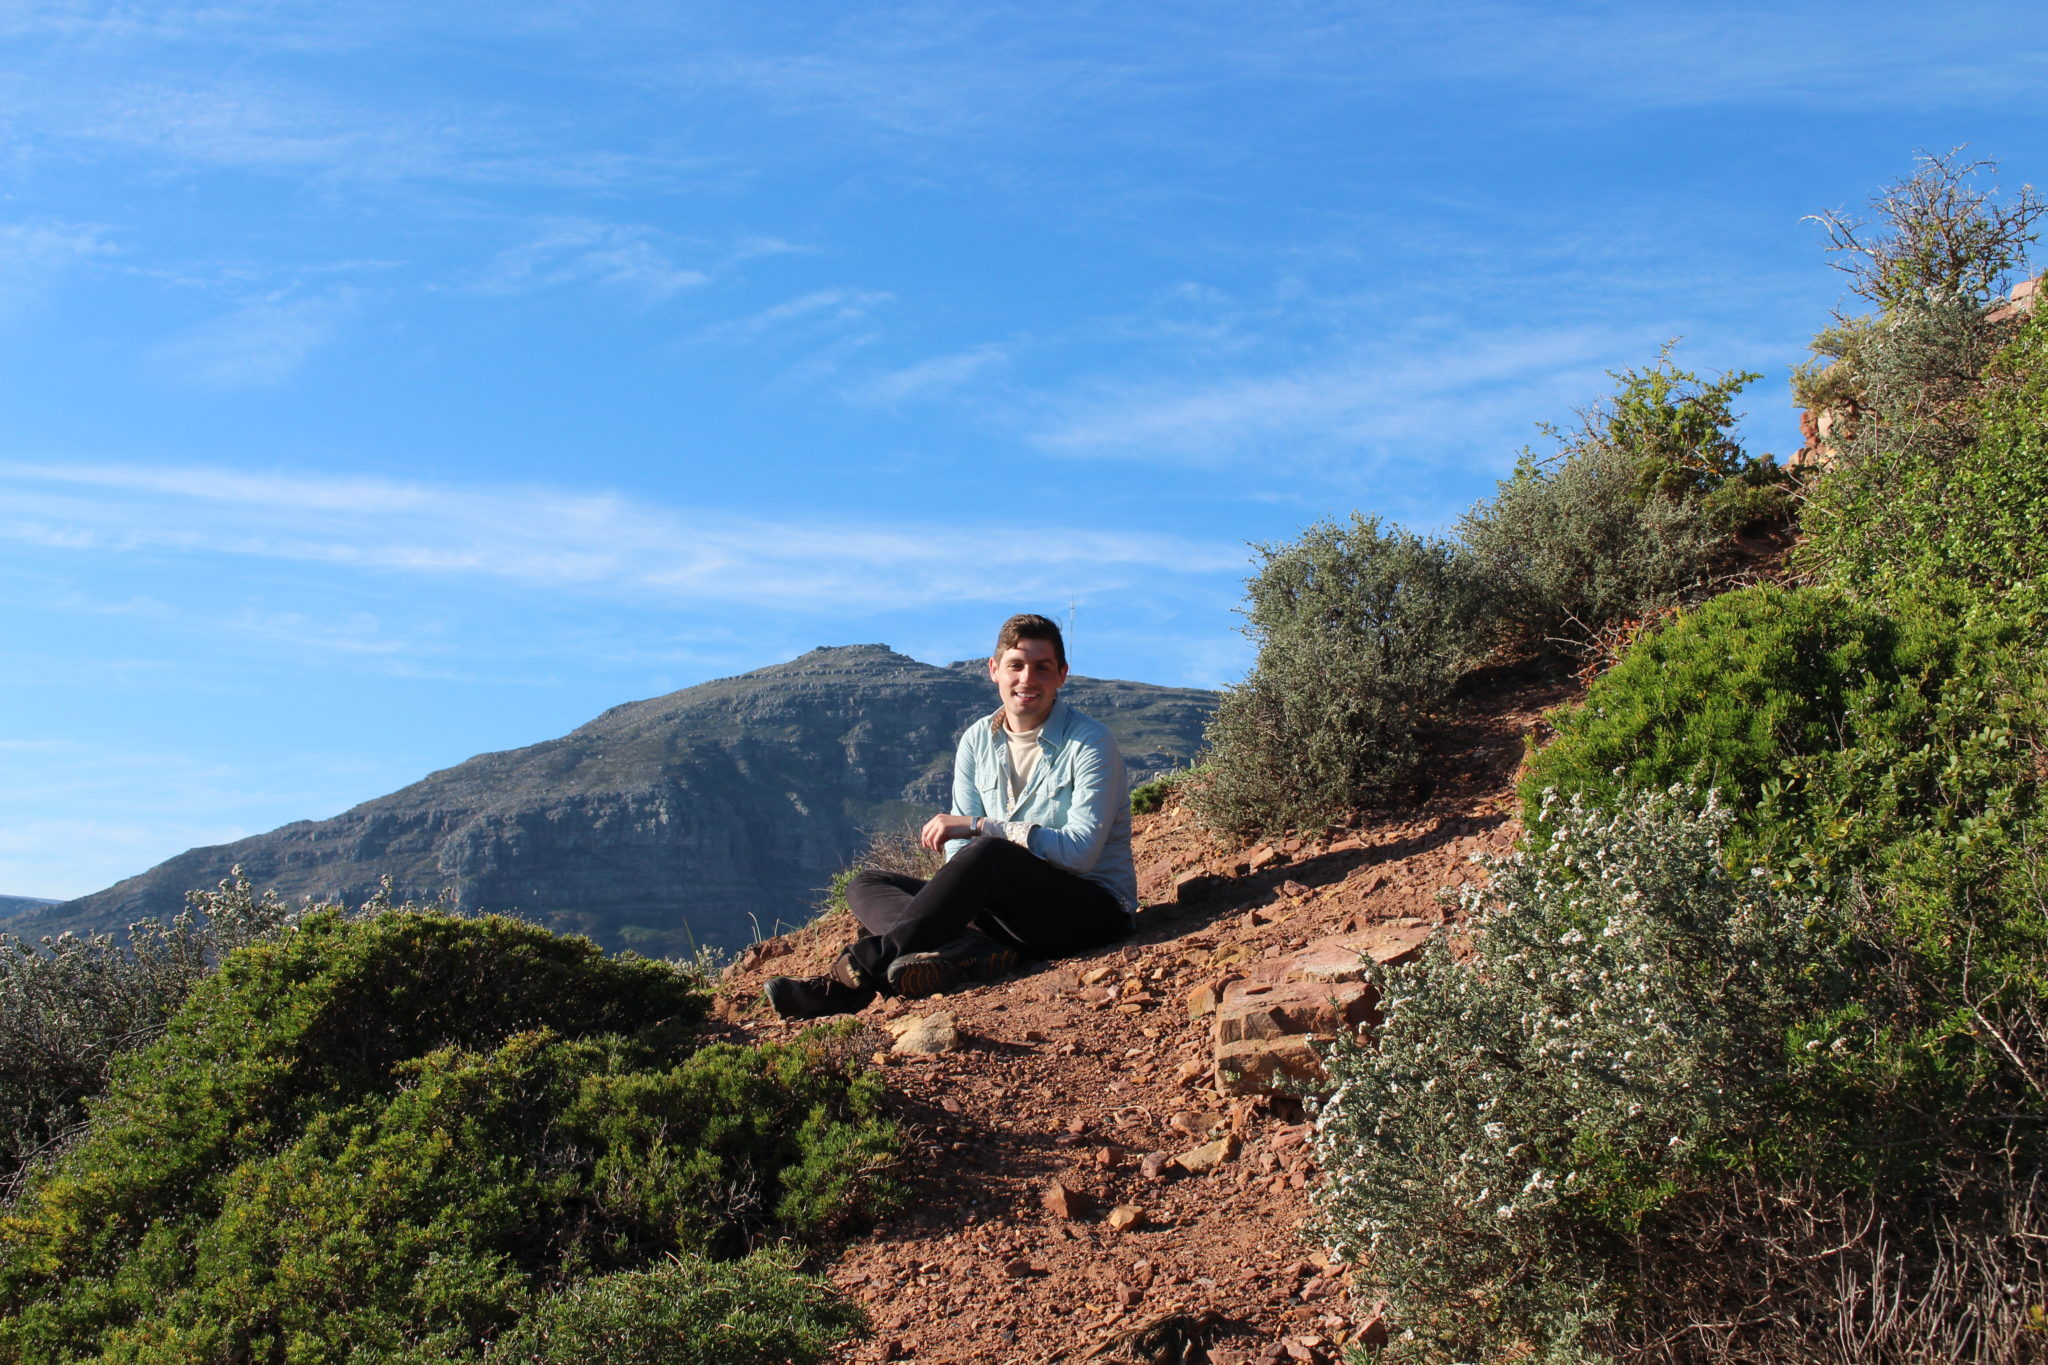 A Mercer student sits on a mountain in Africa.